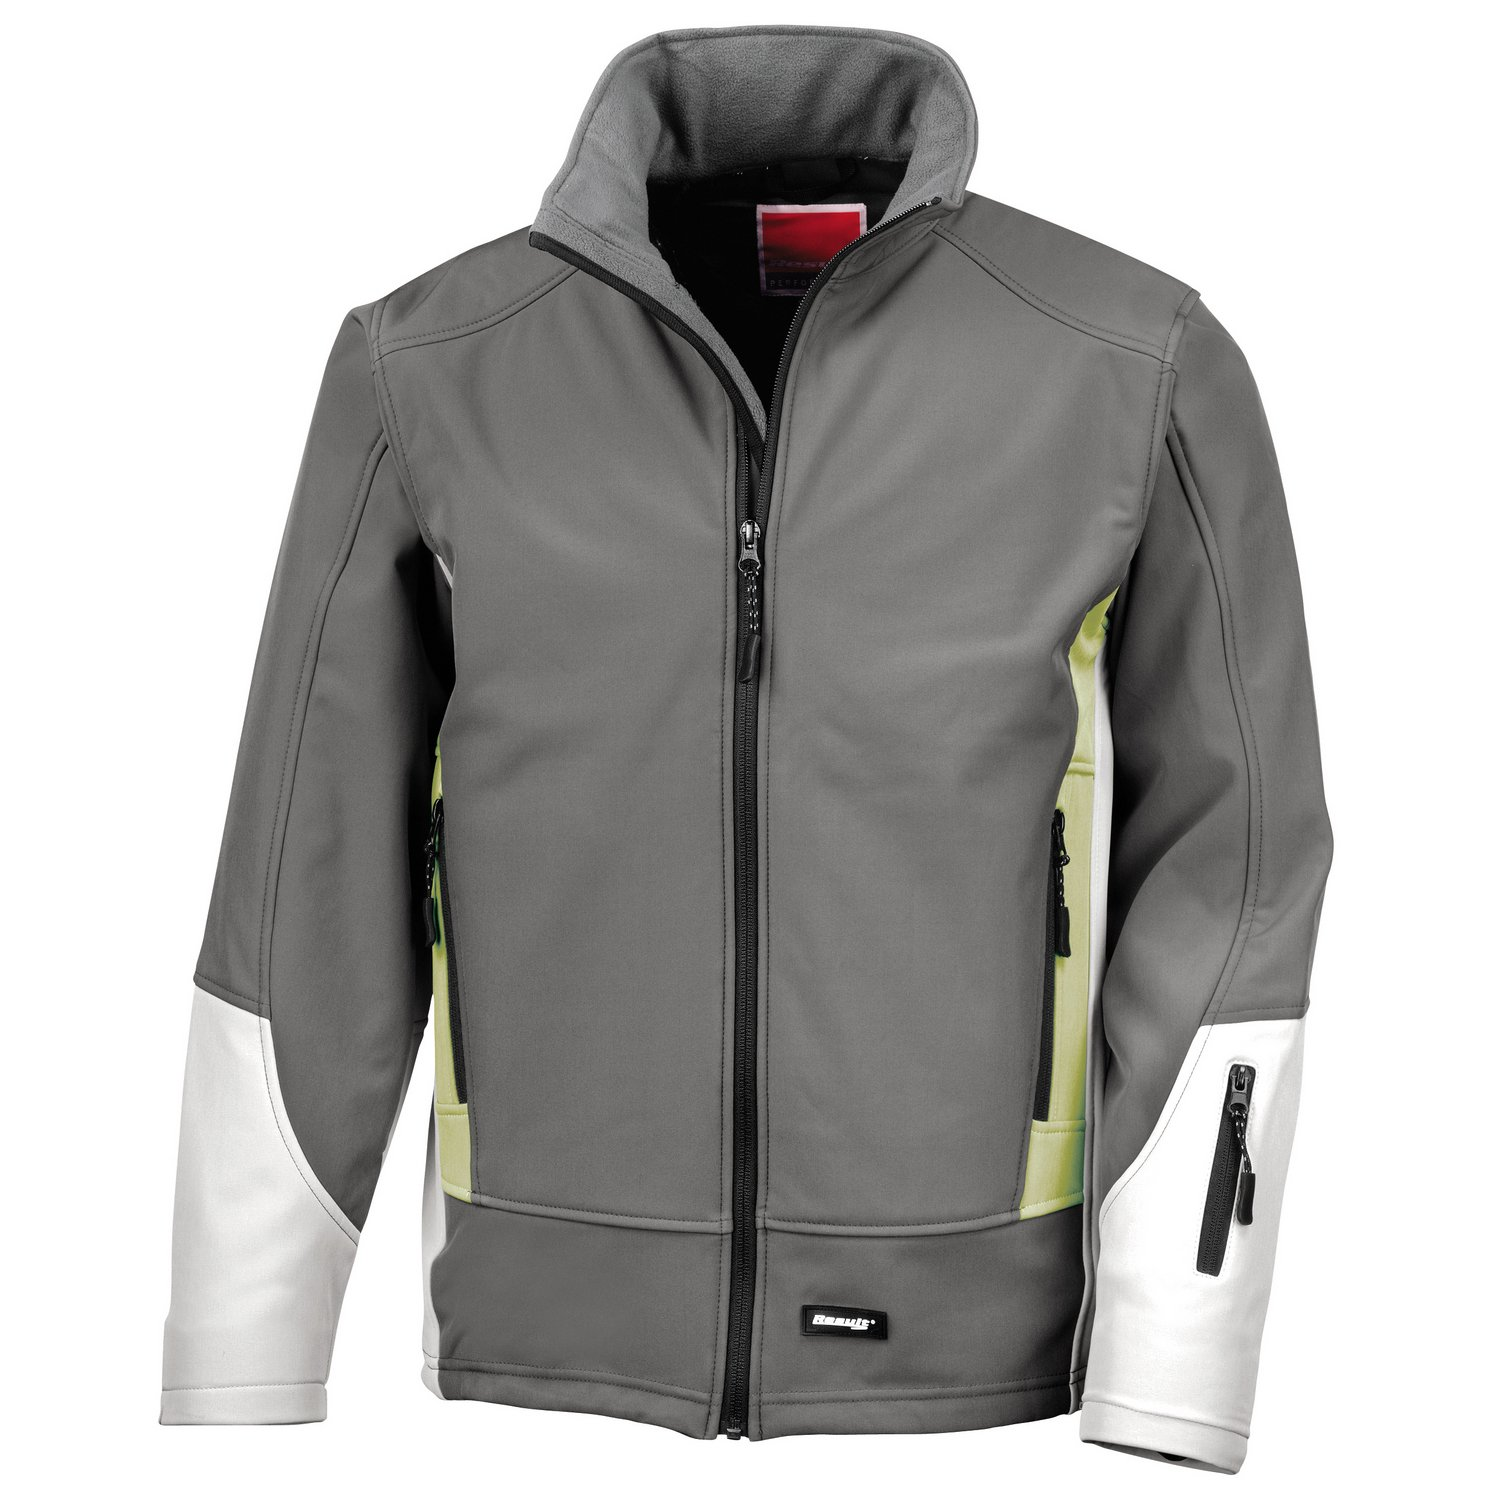 Result Blade 3 layer softshell jacket Charcoal/ Pampas/ Pale Grey S